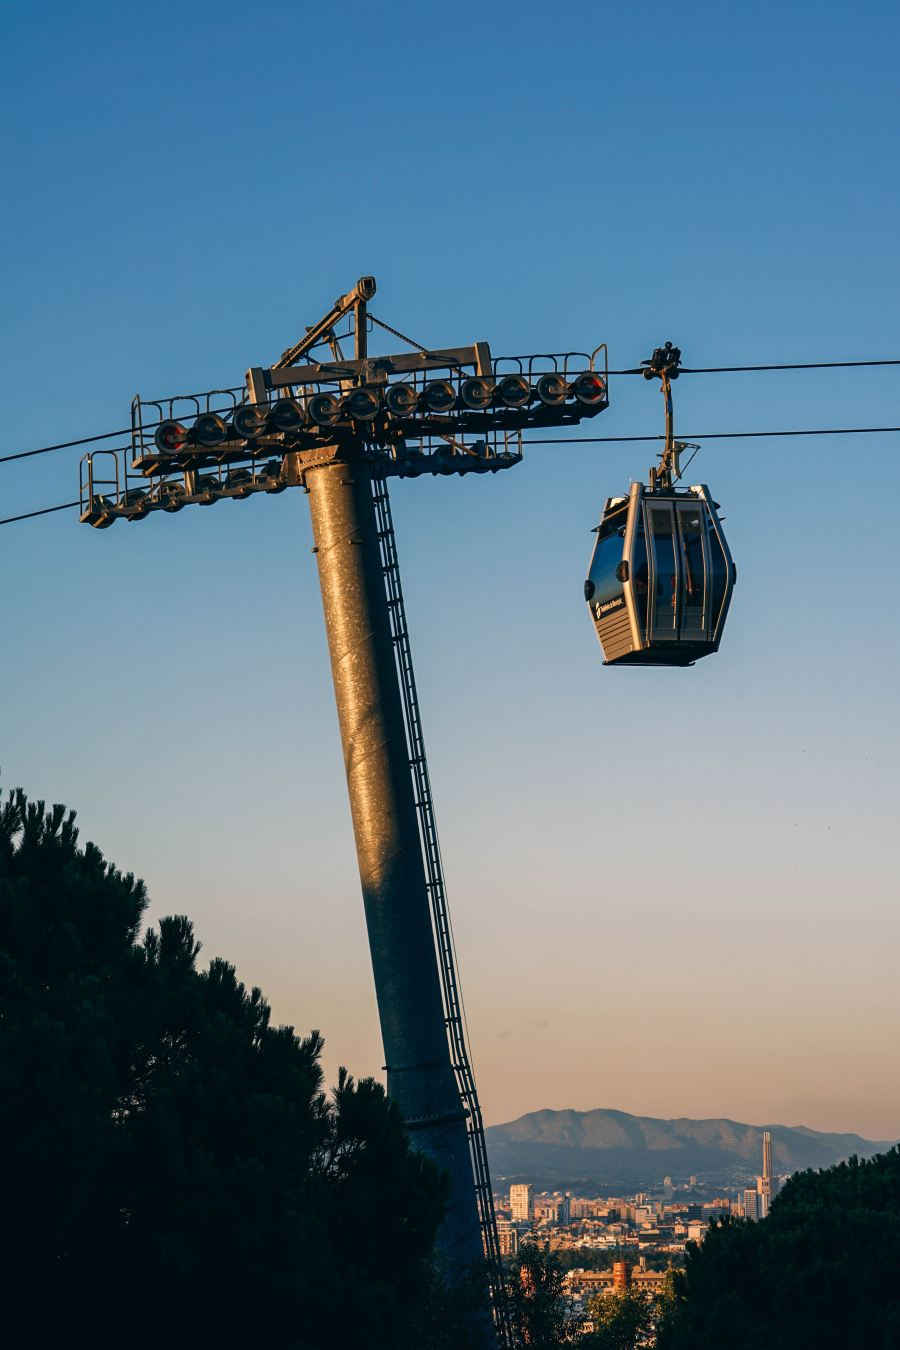 A cable car that cuts across the blue skyline.